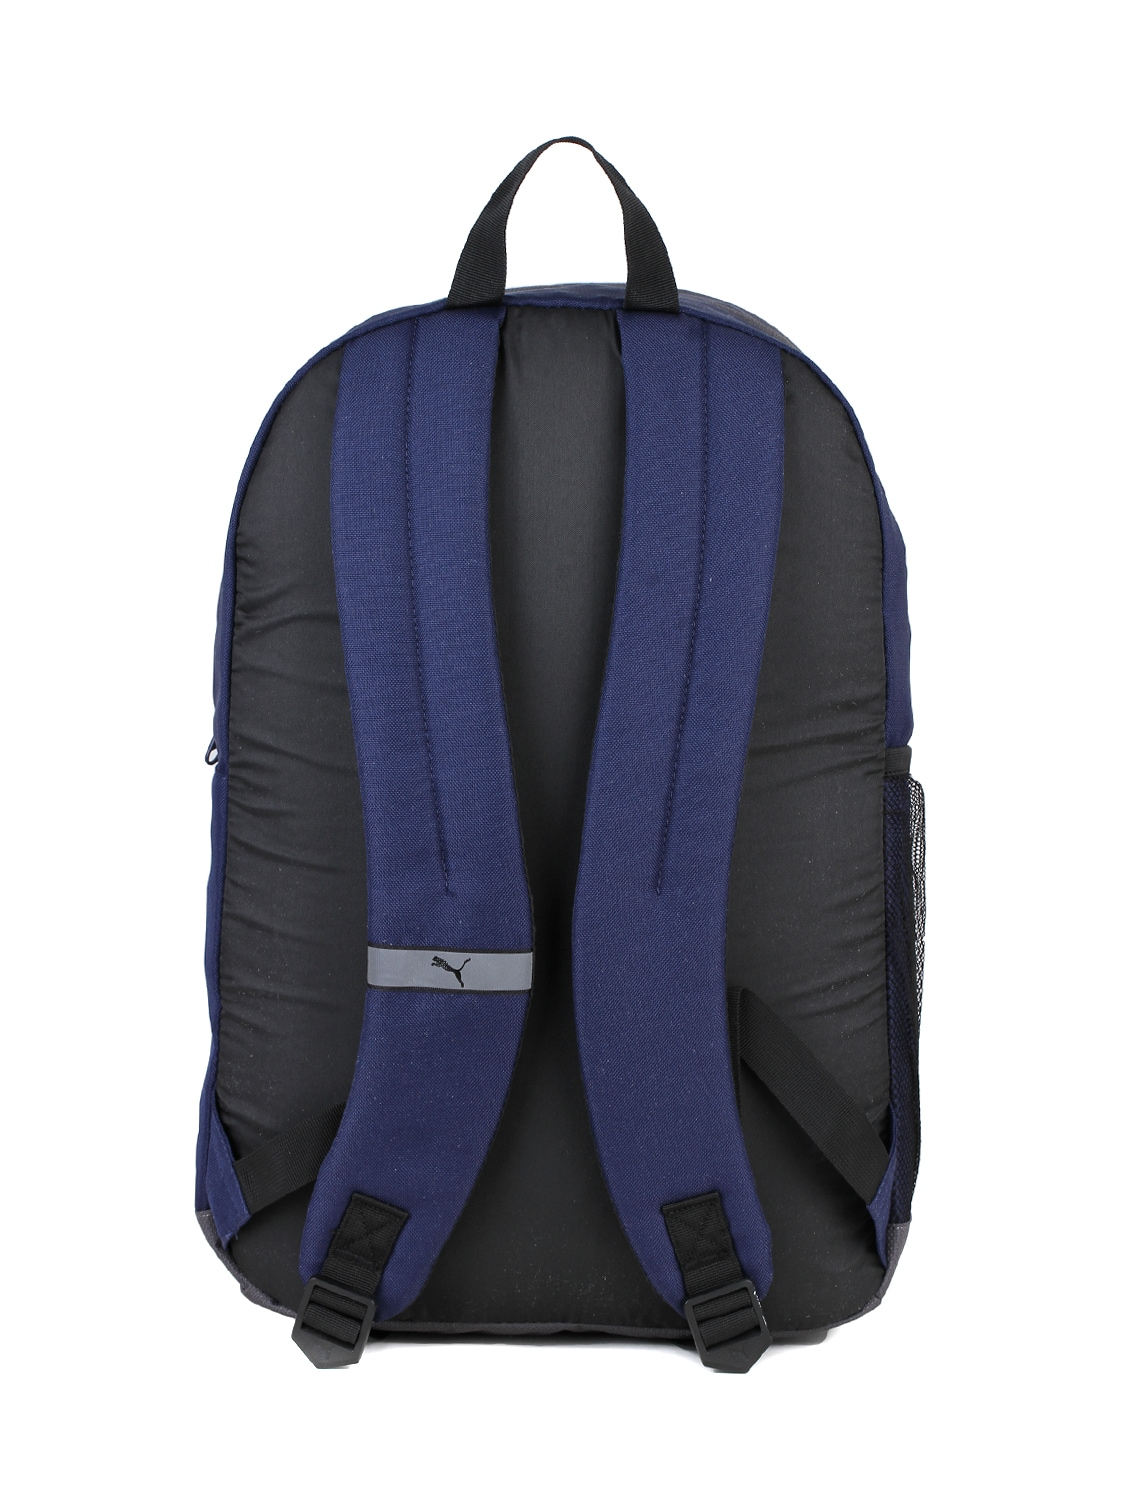 430442e05d Buy Navy Blue Polyester Backpack for Men from Puma for ₹1345 at 10% off